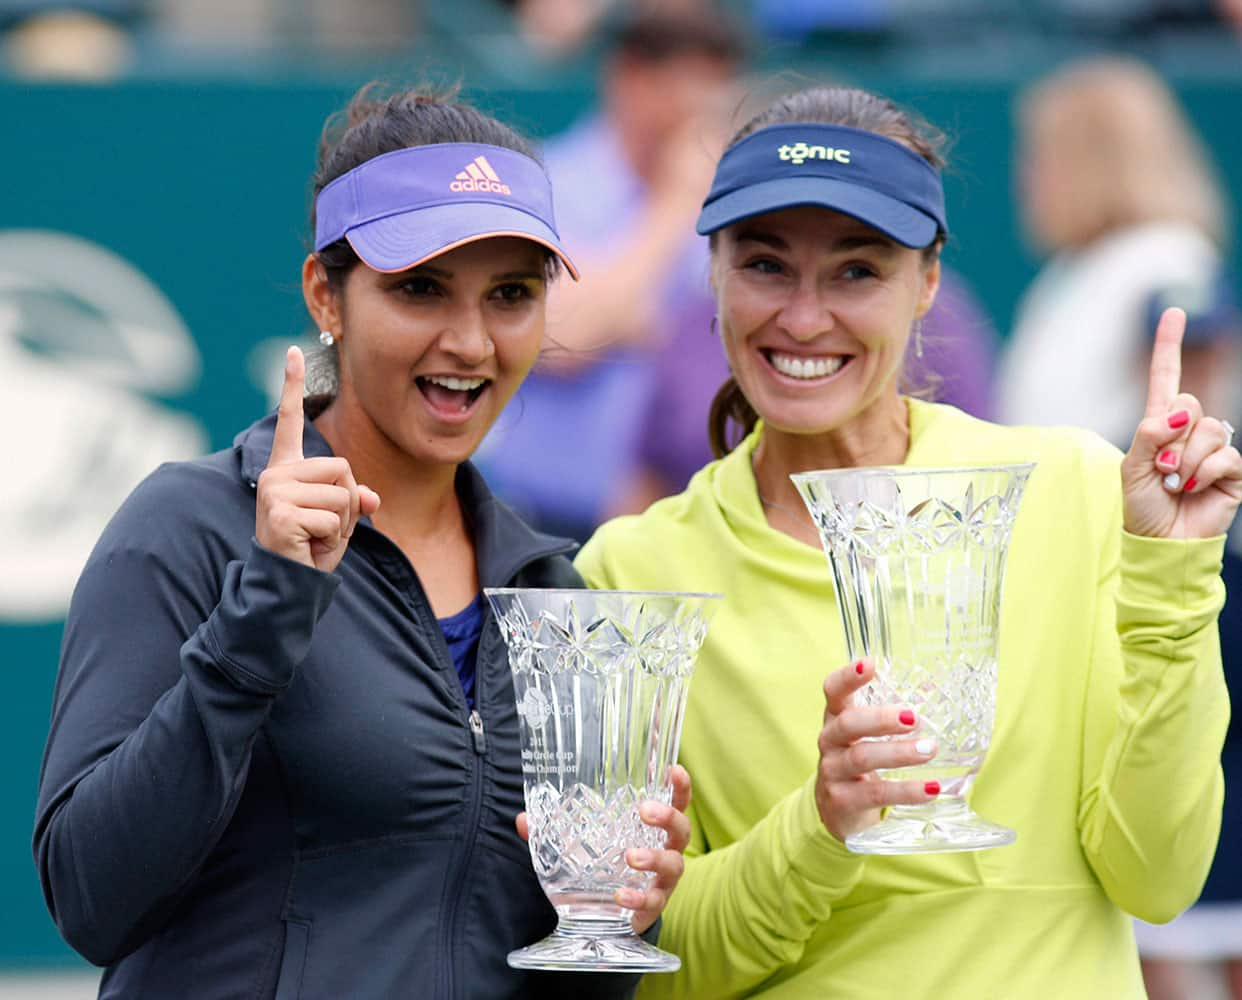 Sania Mirza of India, and her teammate, Martina Hingis of Switzerland, hold their trophies after defeating Alla Kudryavtseva and Anastasia Pavlyuchenkova during a doubles final match at the Family Circle Cup tennis tournament.